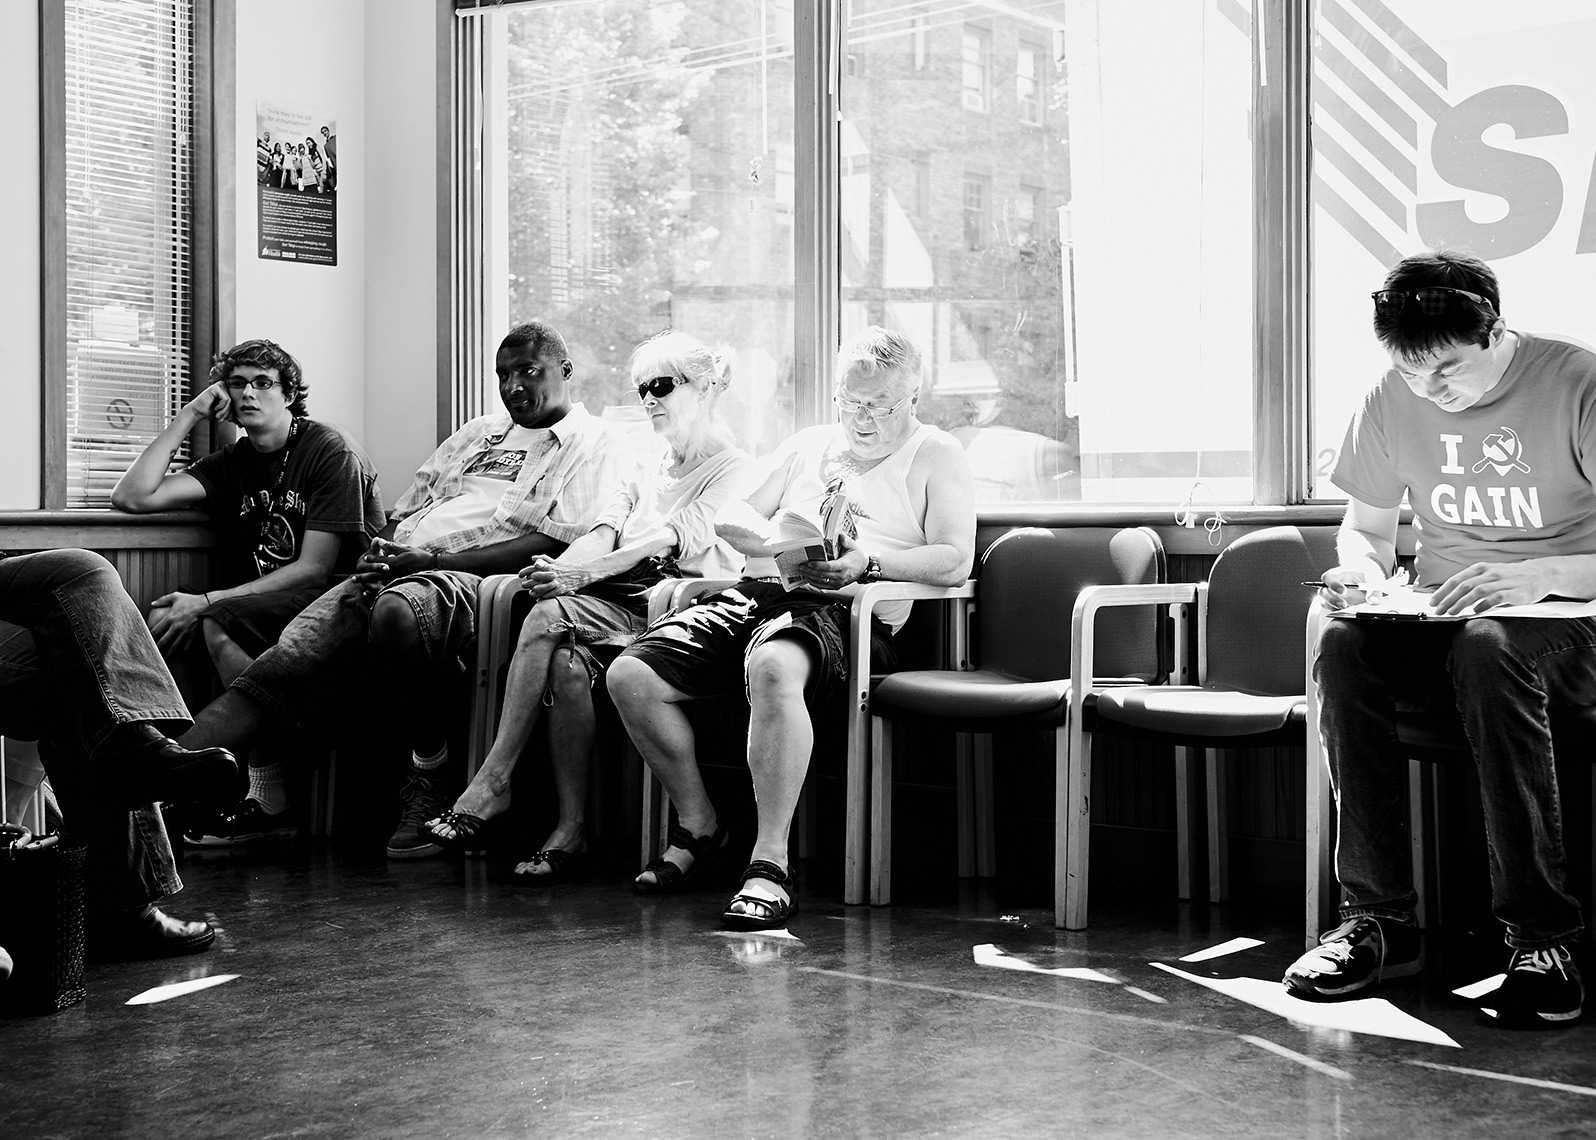 patients in a waiting room at community health facility